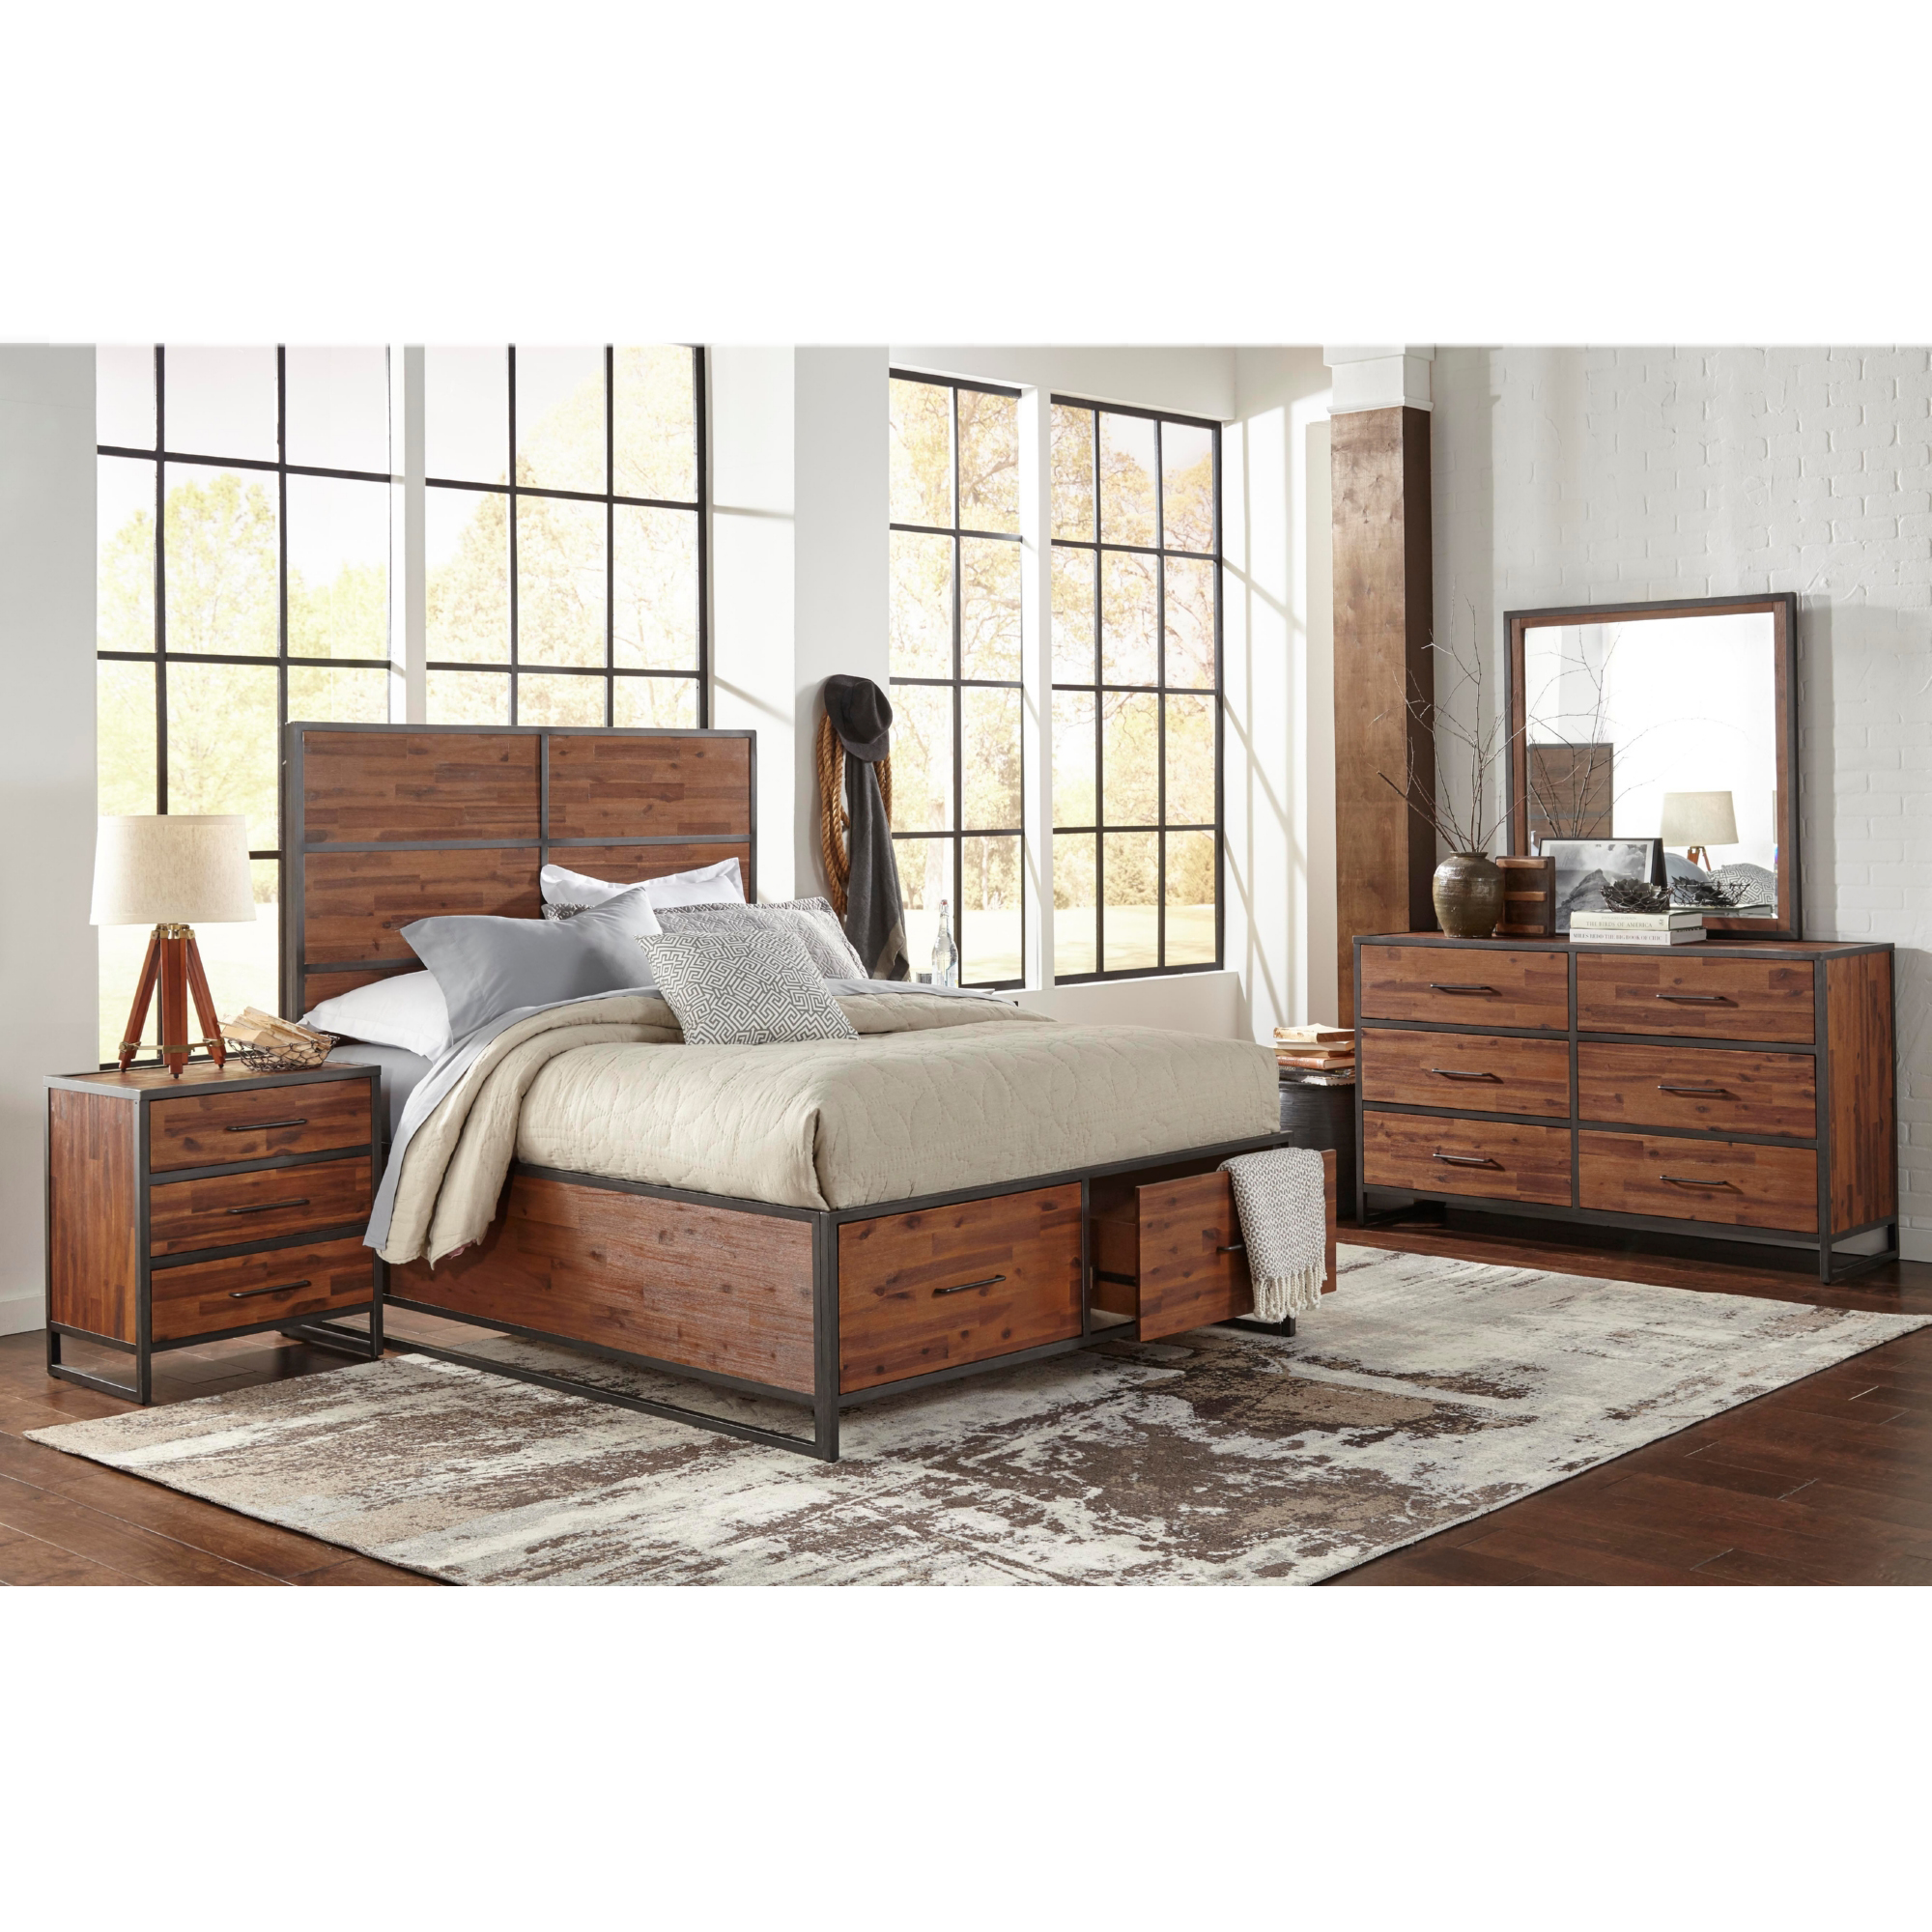 Studio 16 5 Piece Queen Bedroom Set In Acacia U0026 Metal